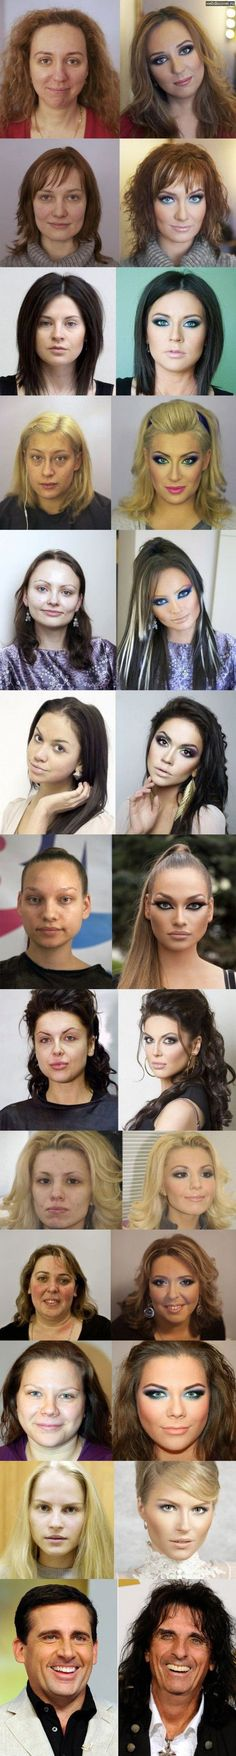 Oh my gosh! The best makeover is the last one! Ha ha ha